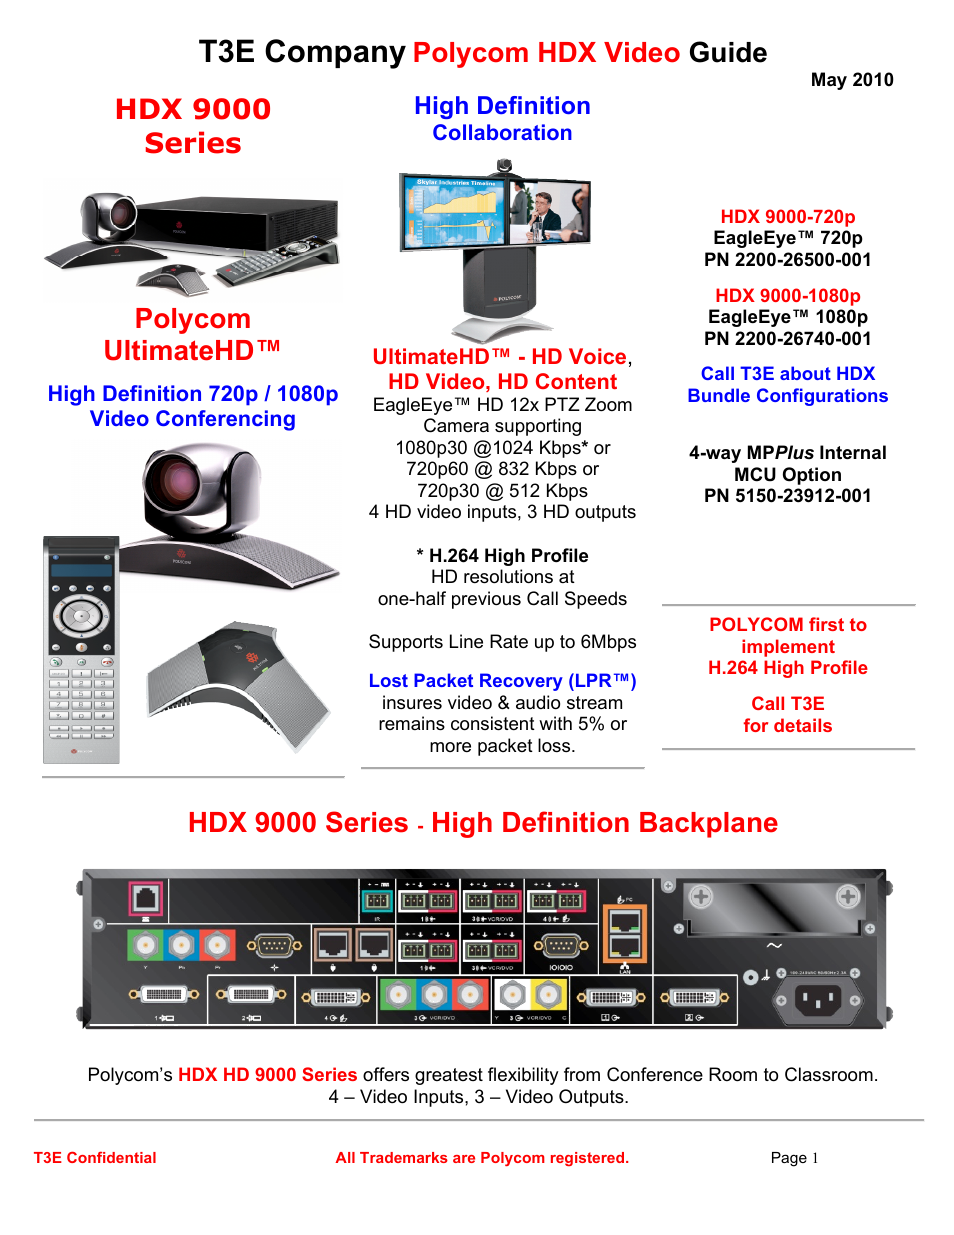 polycom ultimate hd hdx 9000 user manual 5 pages rh manualsdir com polycom hdx 9000 user manual Polycom HDX 9000 Specs